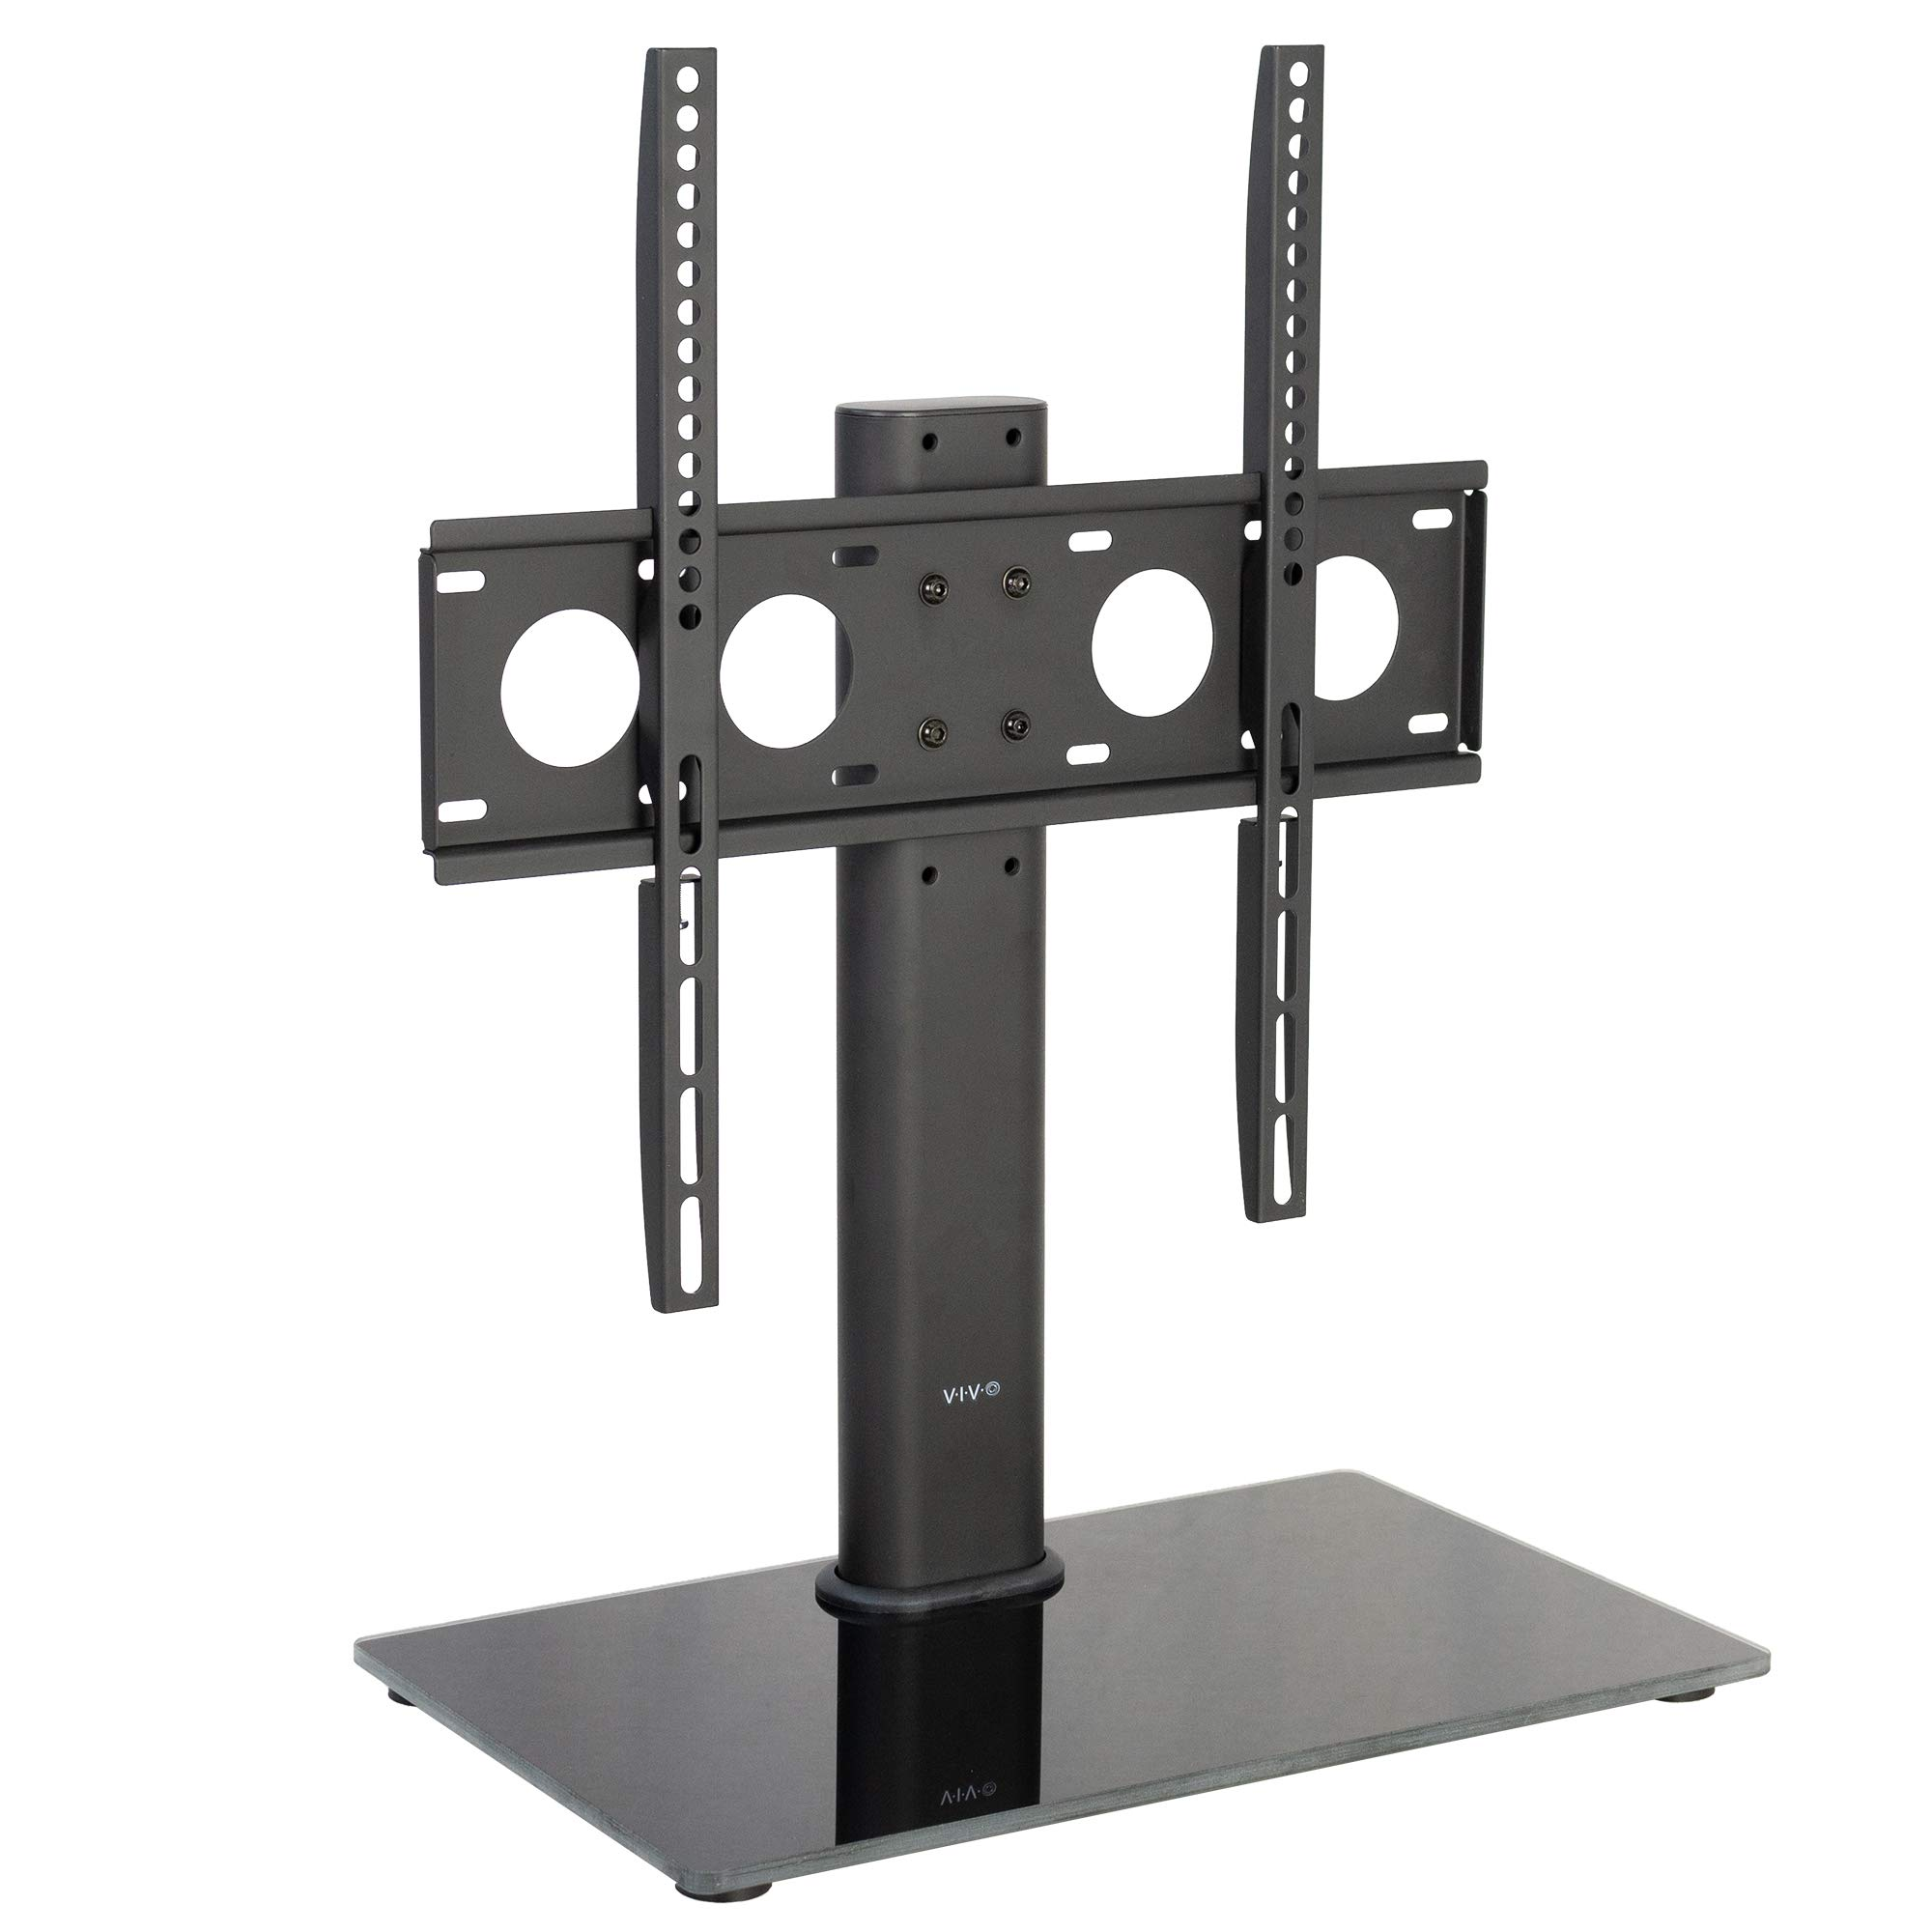 VIVO Black Universal TV Stand for 32 to 50 inch LCD LED Flat Screens | Tabletop VESA Mount with Tempered Glass Base and Cable Management (STAND-TV00J) by VIVO